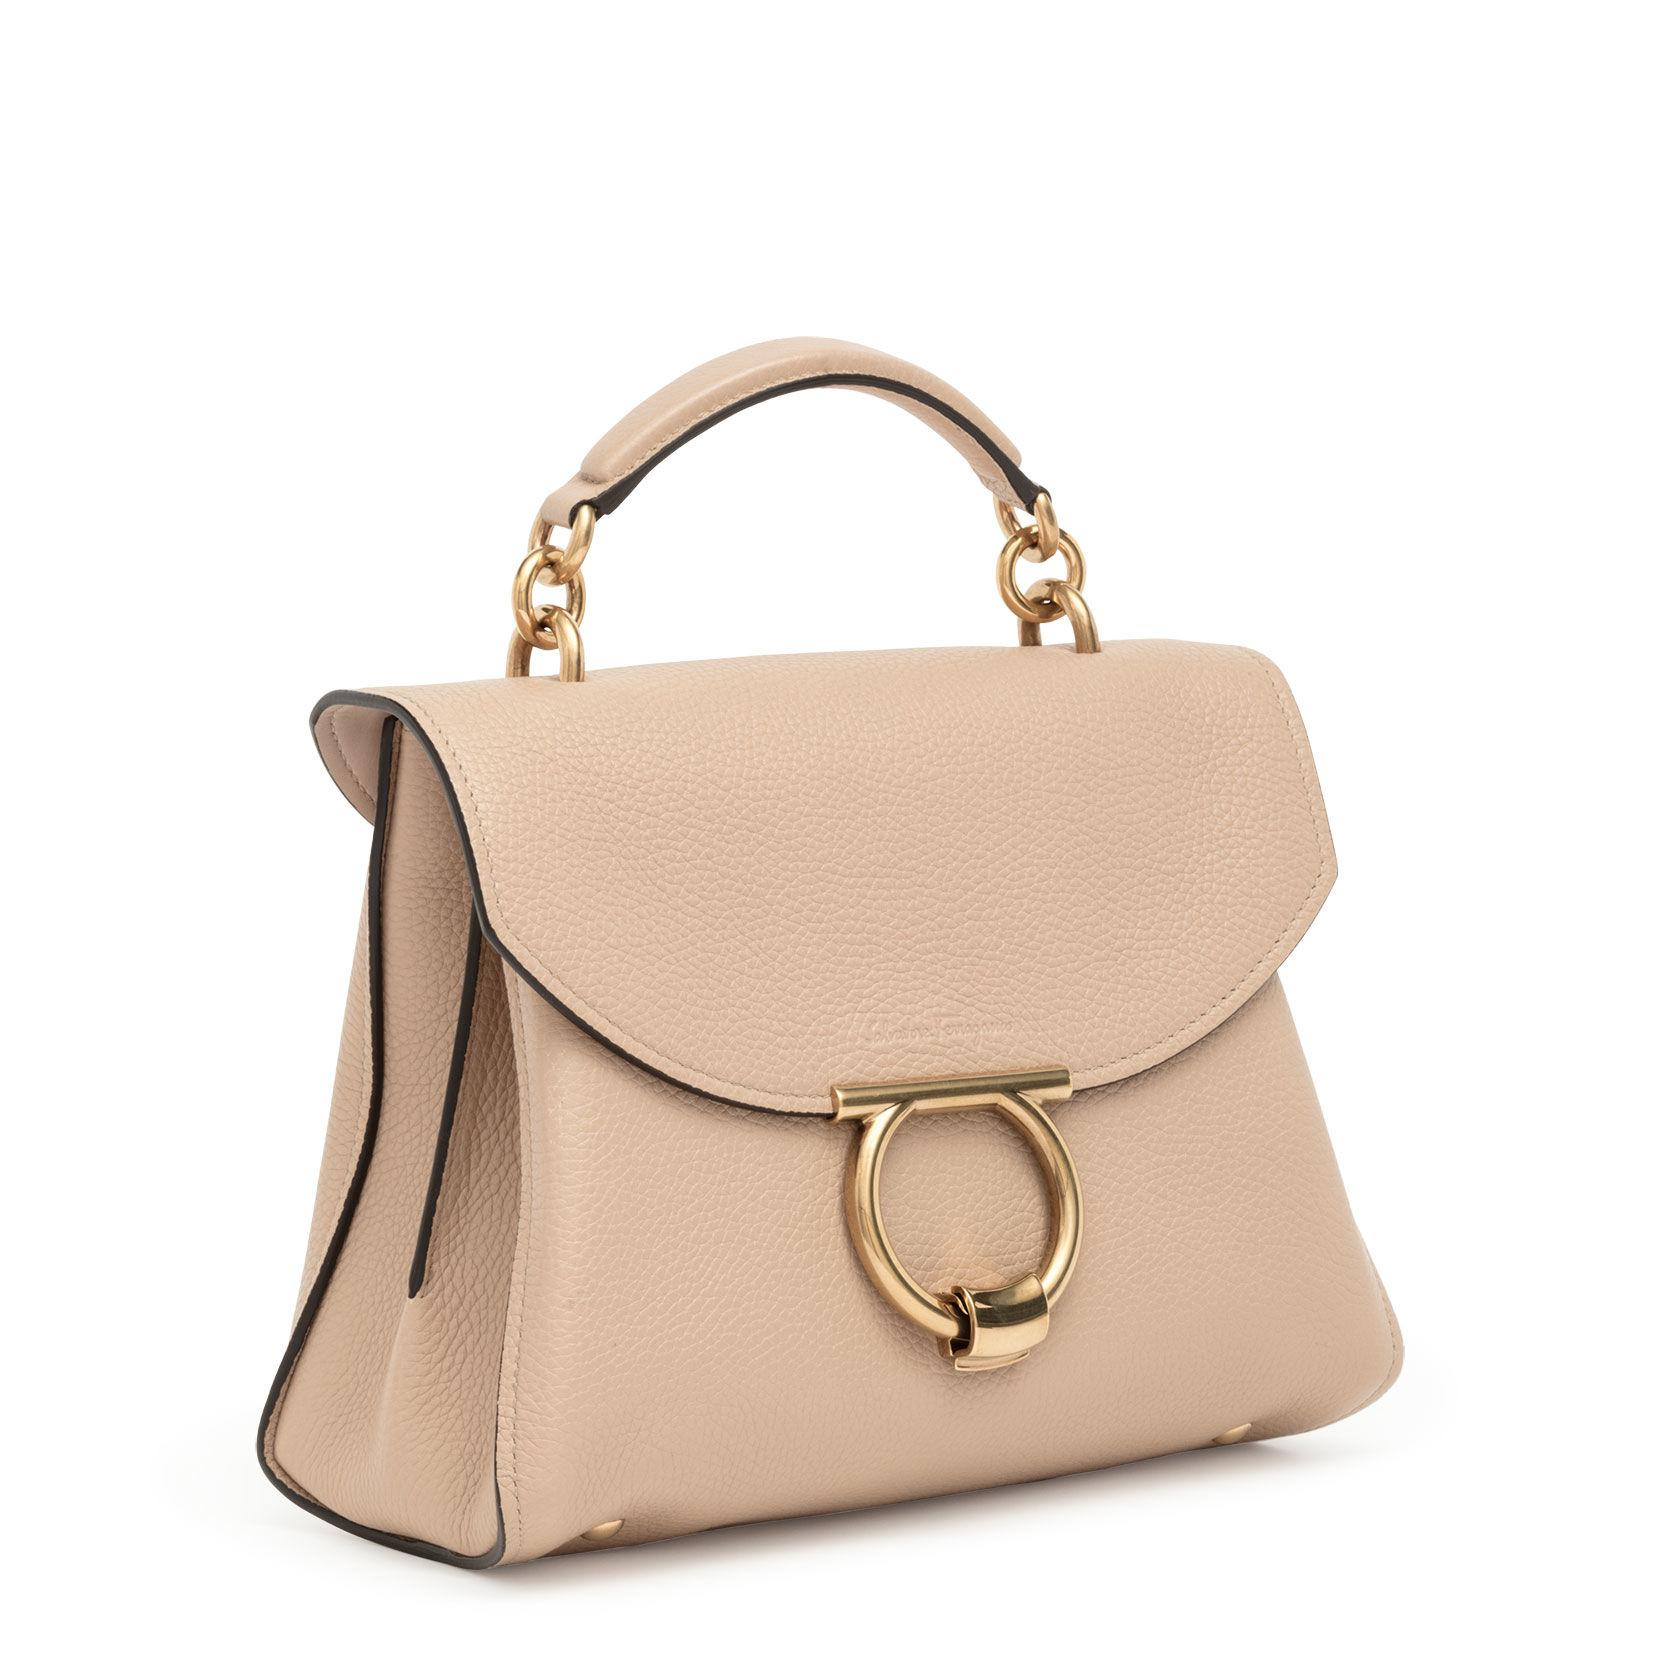 17cb102d2eb7 Ferragamo - Natural Margot S Beige Leather Bag - Lyst. View fullscreen